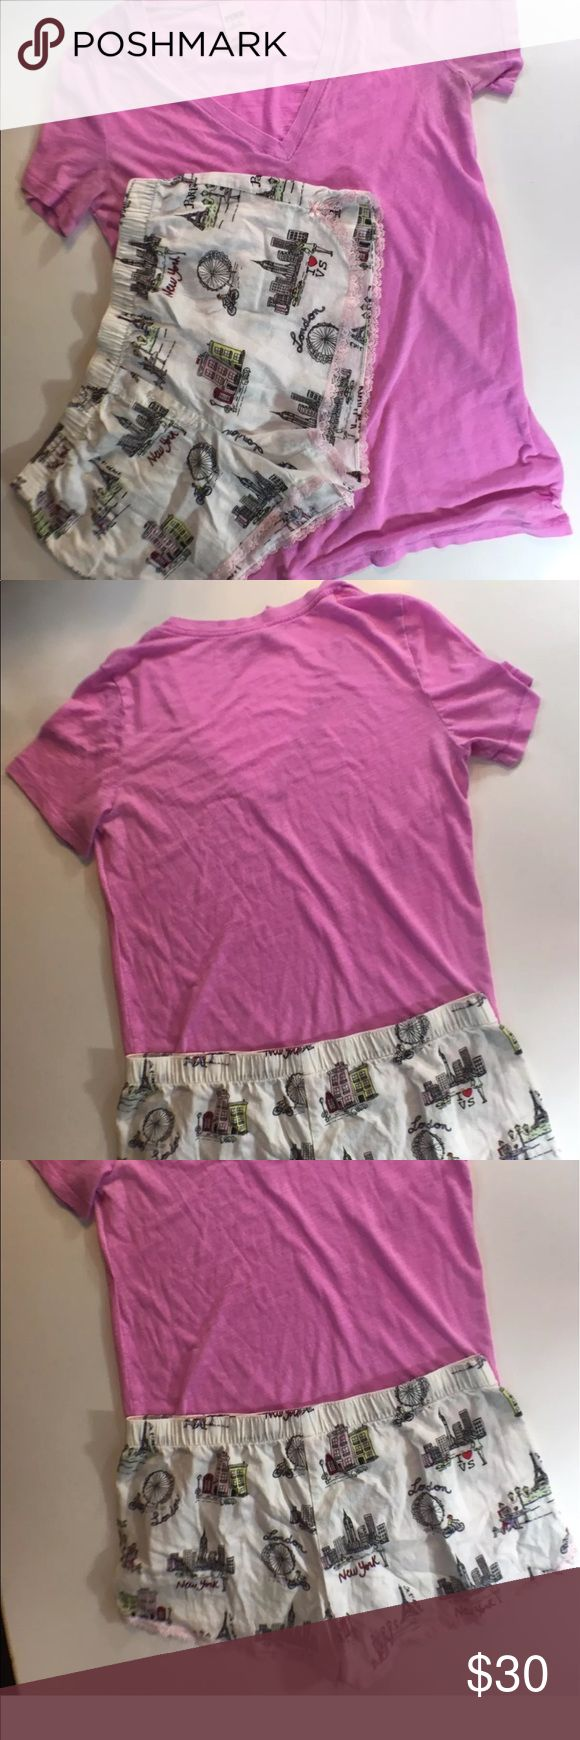 "VS Shorts Sz M New York Paris Love Pink Shirt Victoria's Secret Shorts Sz M Graphics New York London Paris Love Pink M Shirt  Shorts 16"" Waist 10"" Length  Shirt 20"" arm pit to arm pit 28"" Length PINK Victoria's Secret Intimates & Sleepwear Pajamas"